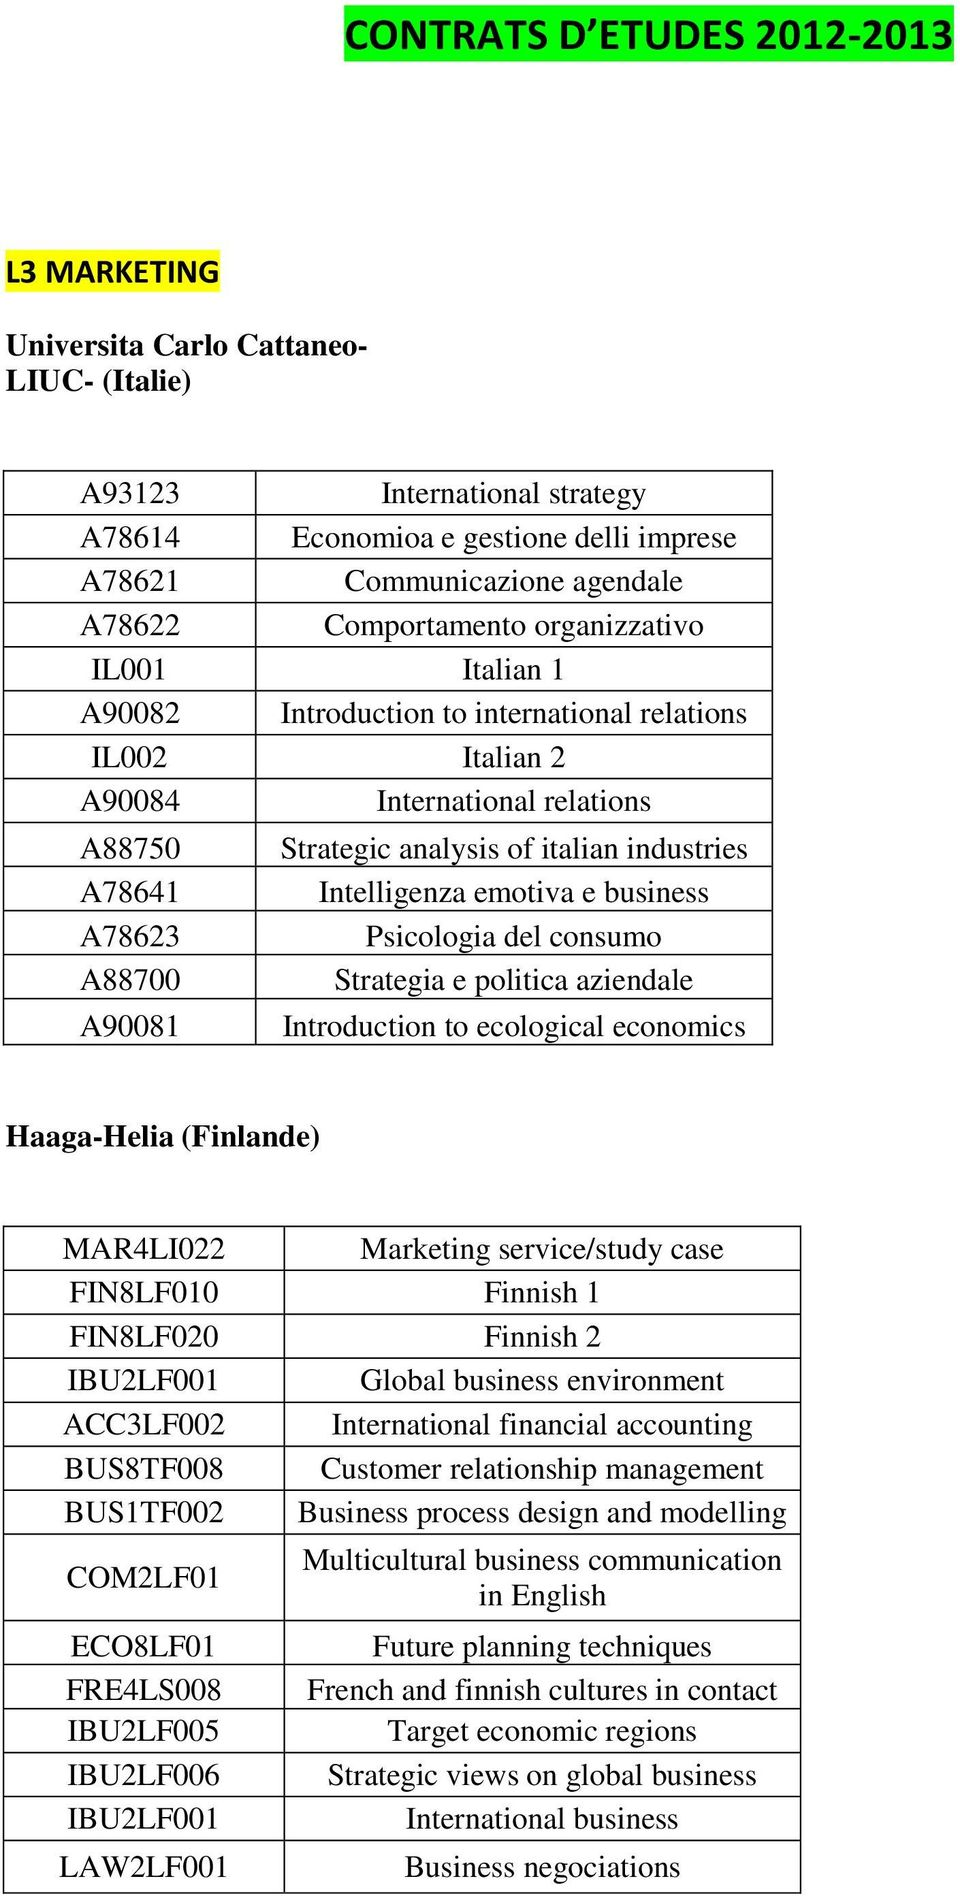 italian industries Intelligenza emotiva e business Psicologia del consumo Strategia e politica aziendale Introduction to ecological economics Haaga-Helia (Finlande) MAR4LI022 Marketing service/study